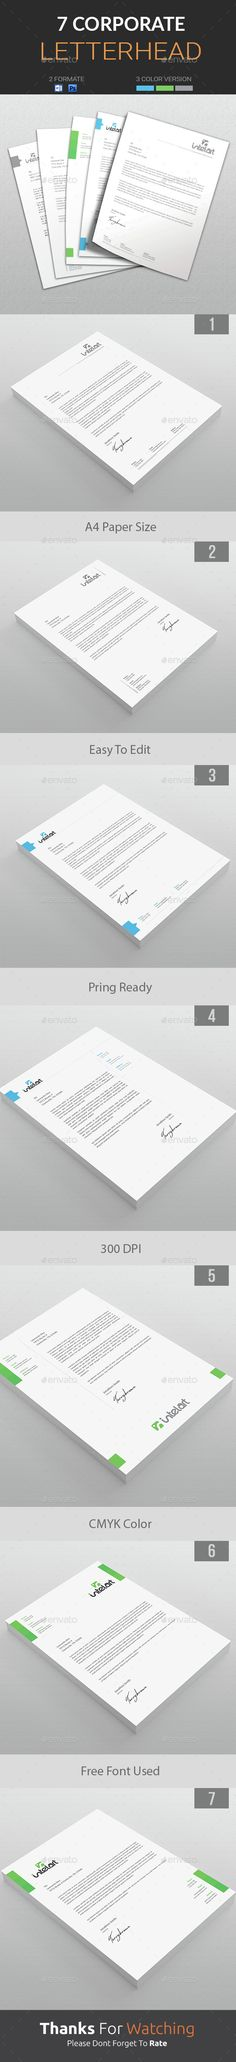 Letterhead Template Letterhead template, Template and Stationery - free word letterhead template